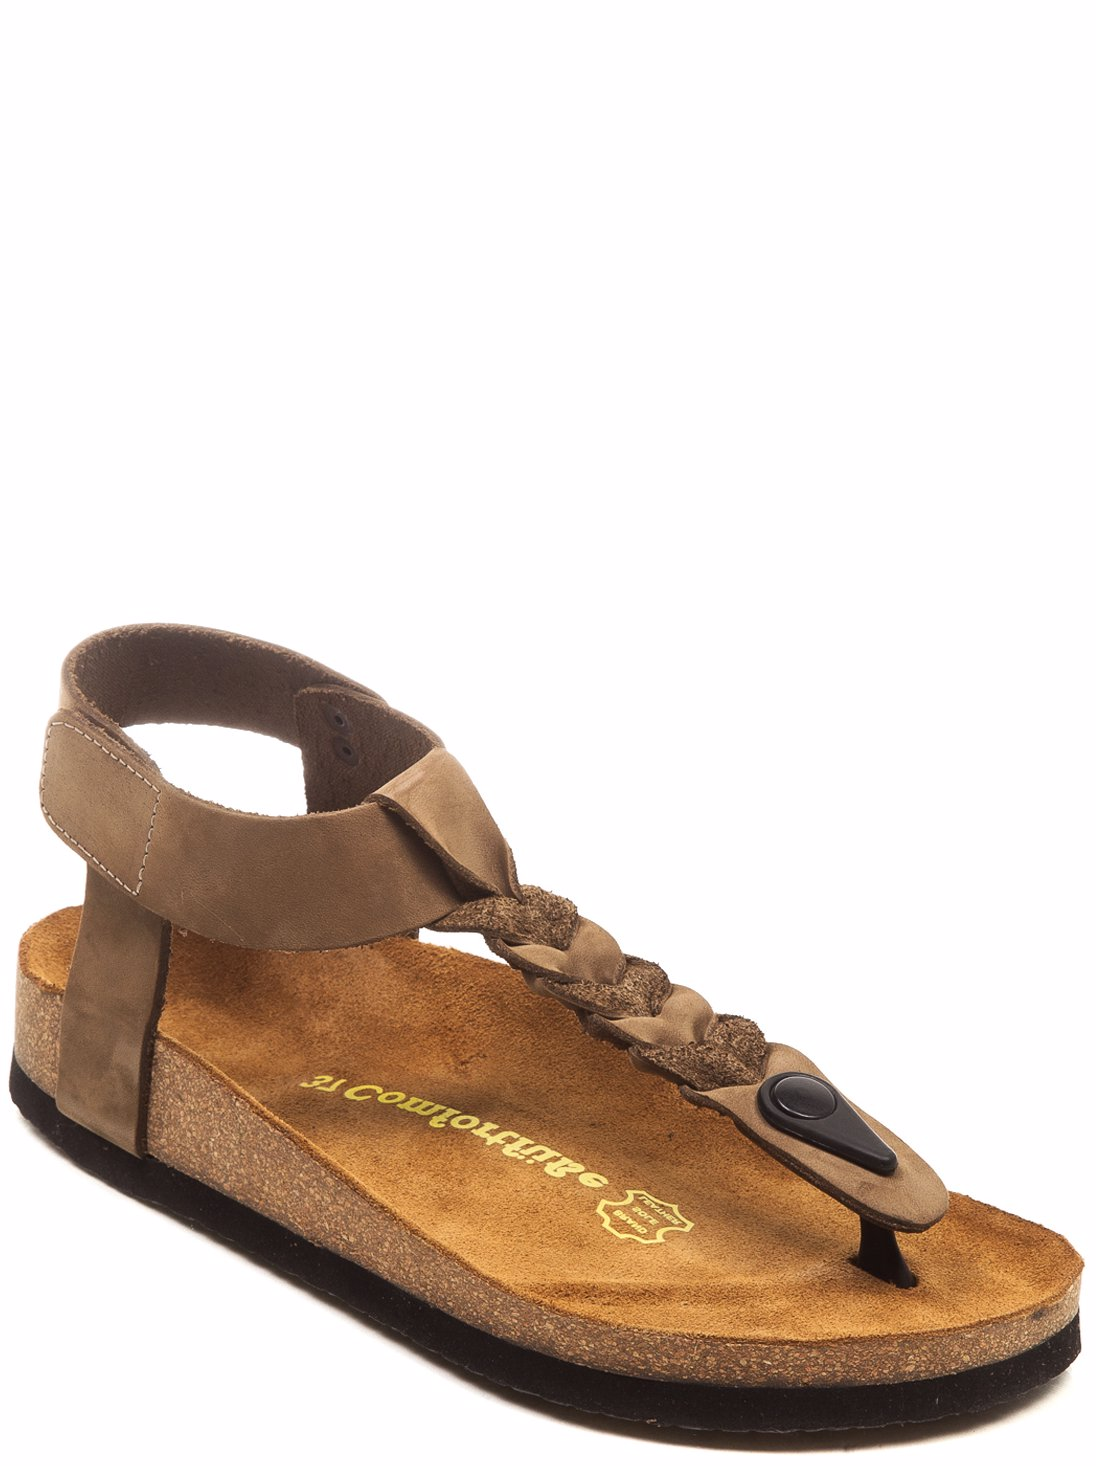 1ba535d1149 This product is not available. Preview with Zoom. Comfortfusse. Leather  Gaspara 420300 Sandal Sand